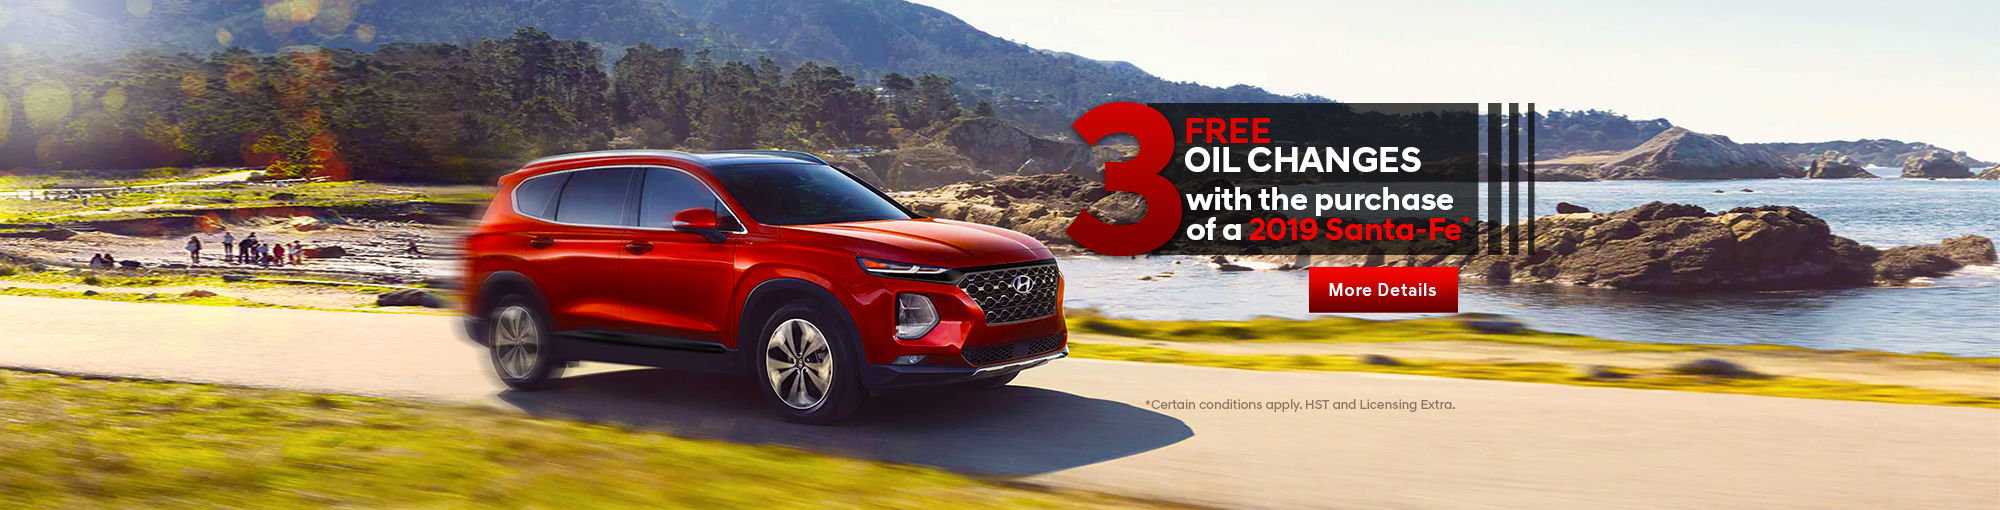 3 FREE OIL CHANGES